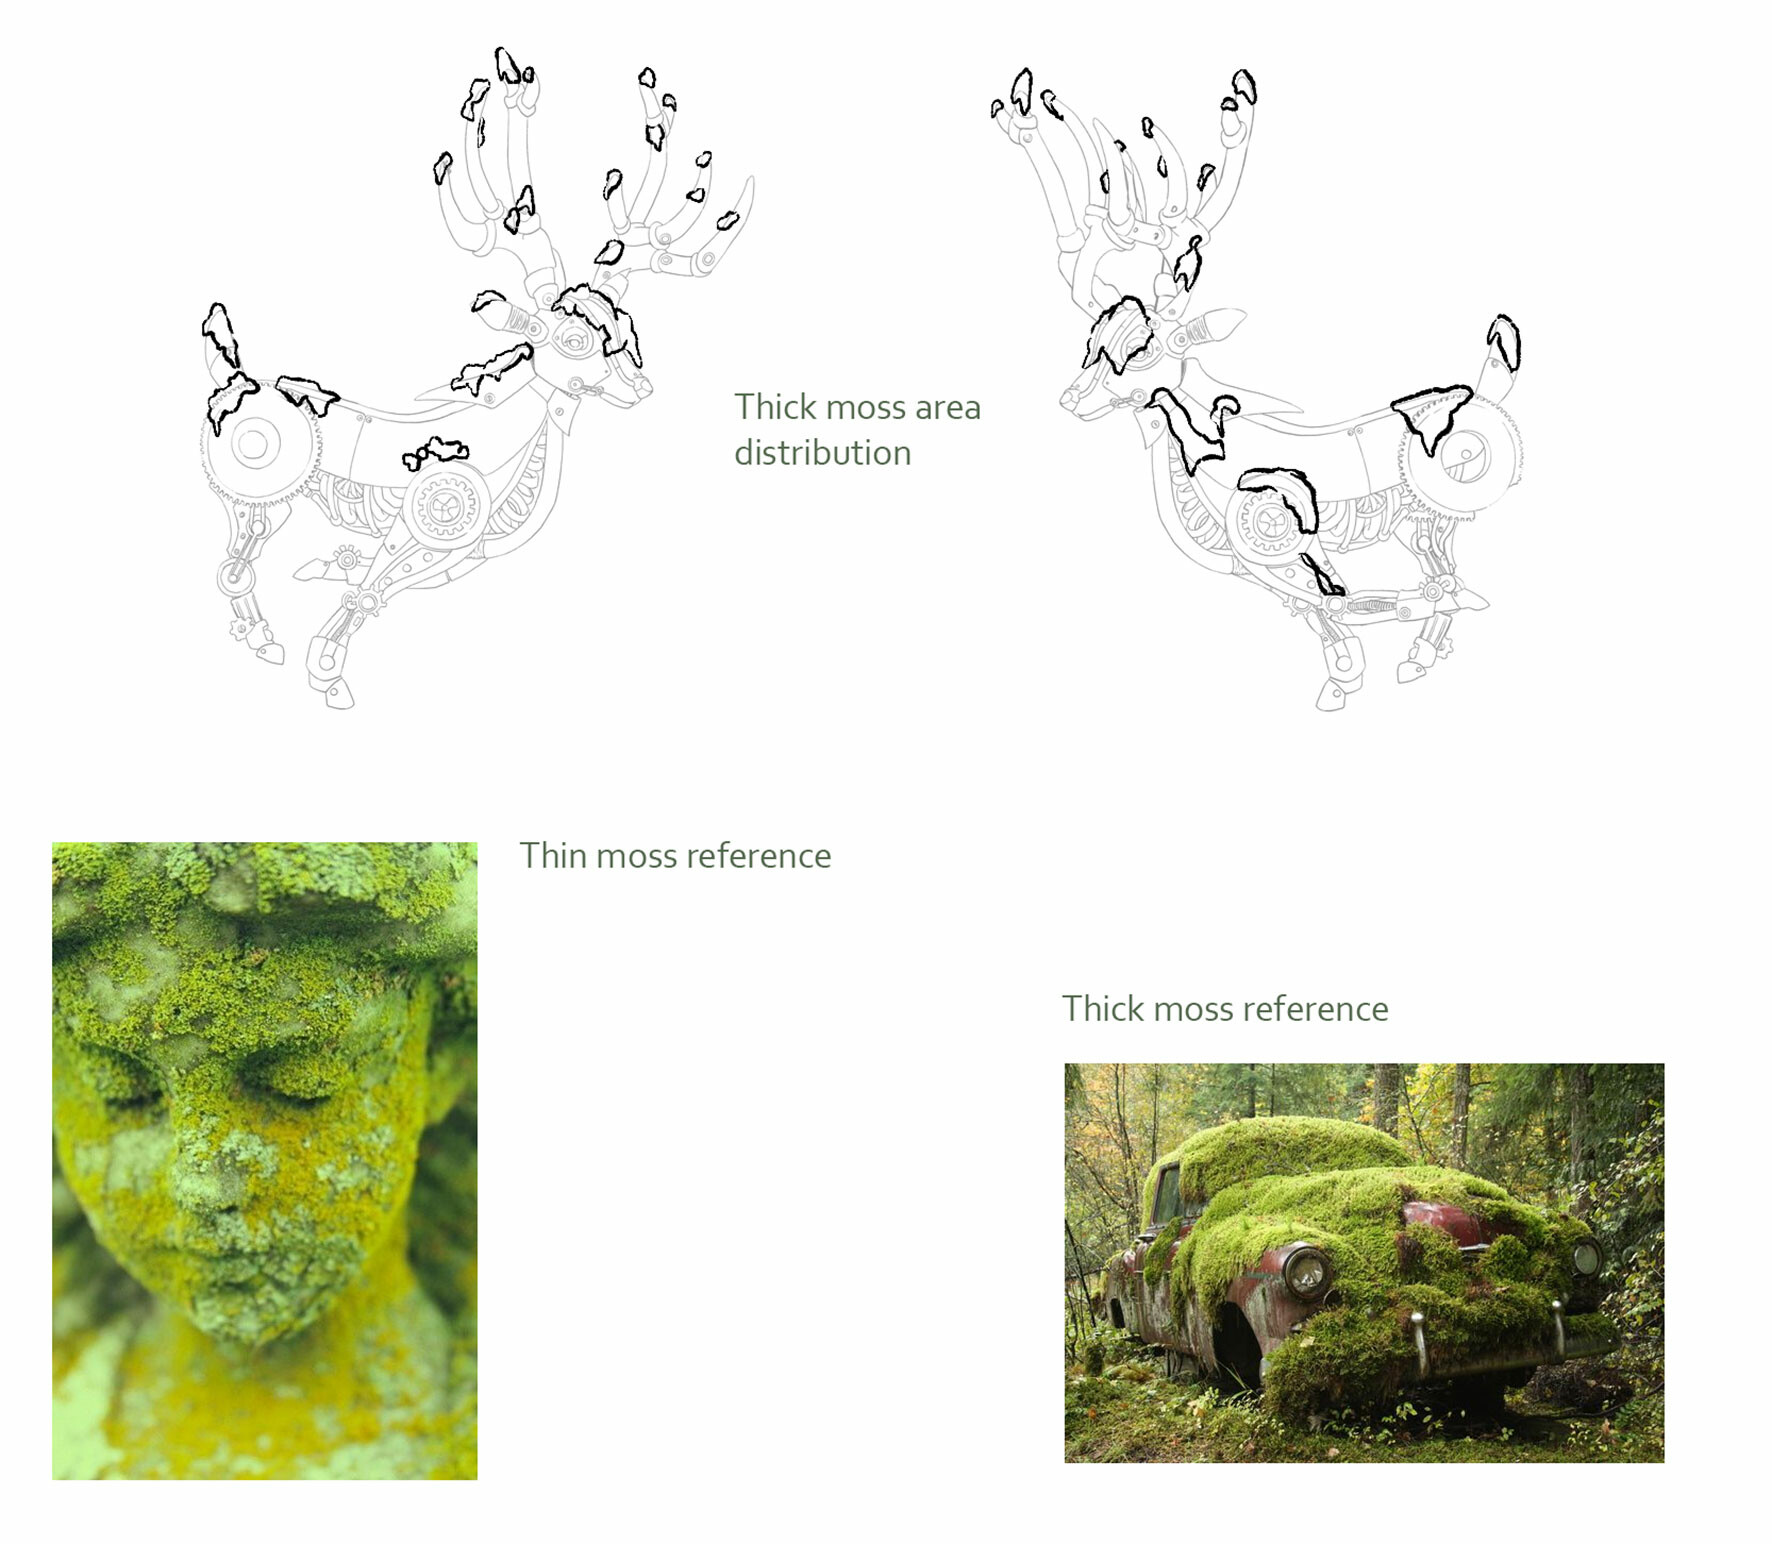 Moss map and references